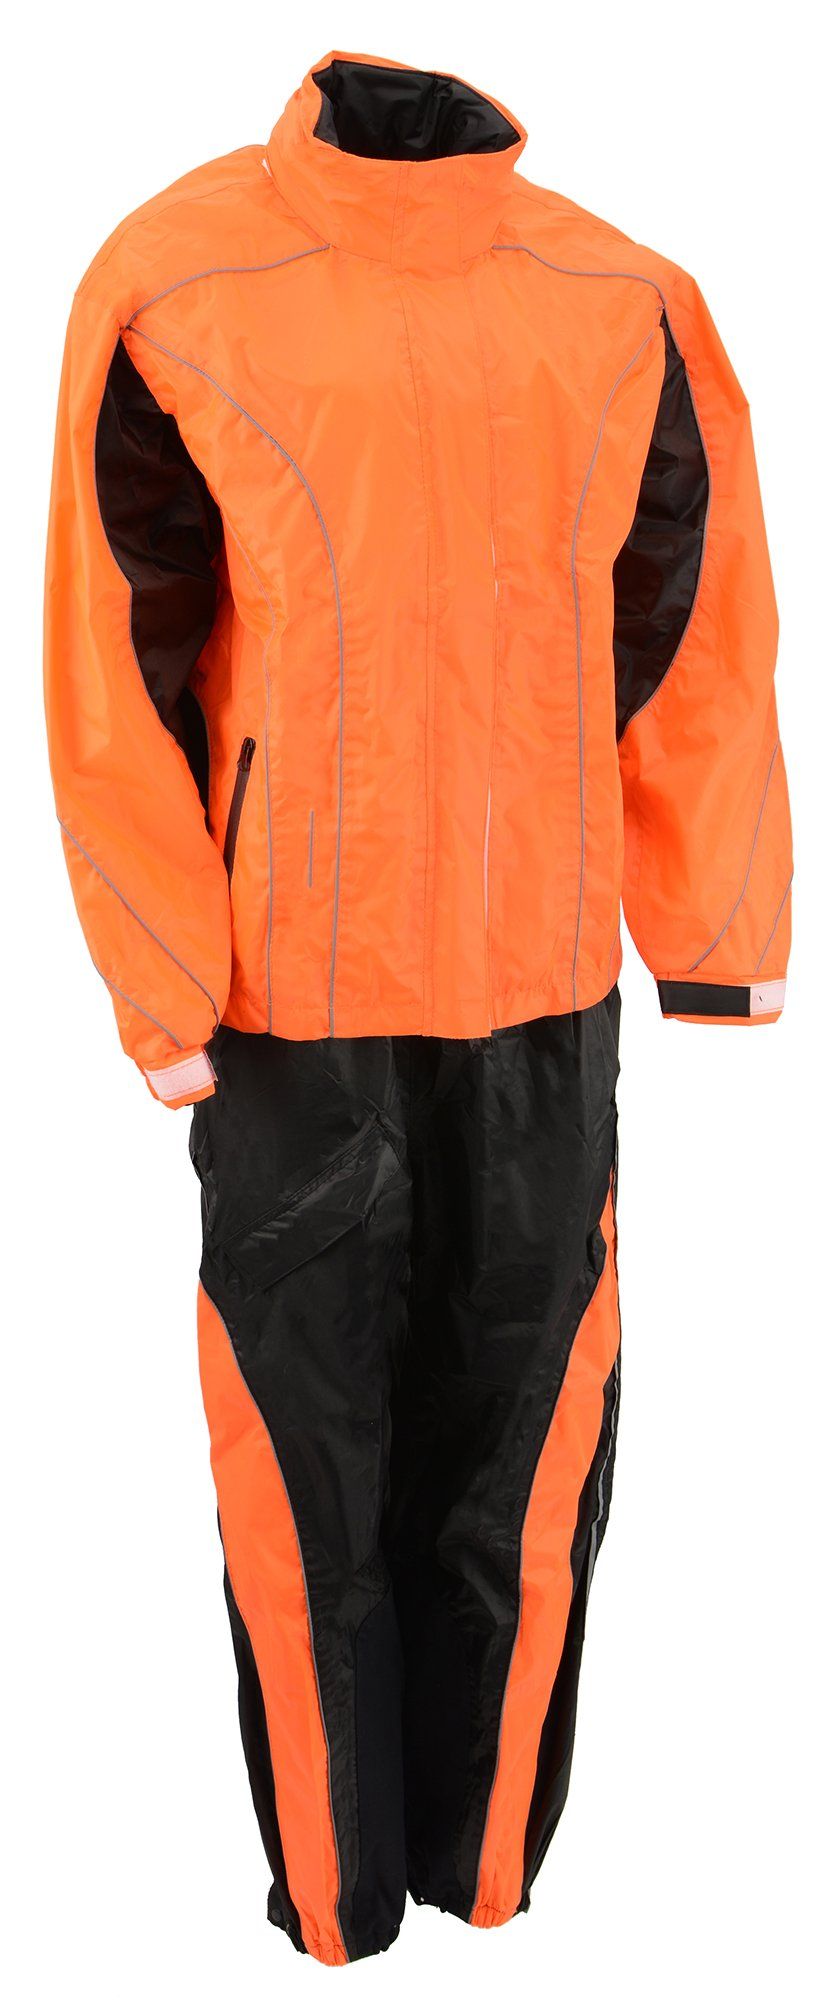 M-BOSS MOTORCYCLE APPAREL-BOS29600-BLK/NEON ORNG-Women's two piece high visibility rain suit.-BLK/NEON ORNG-2X-SMALL